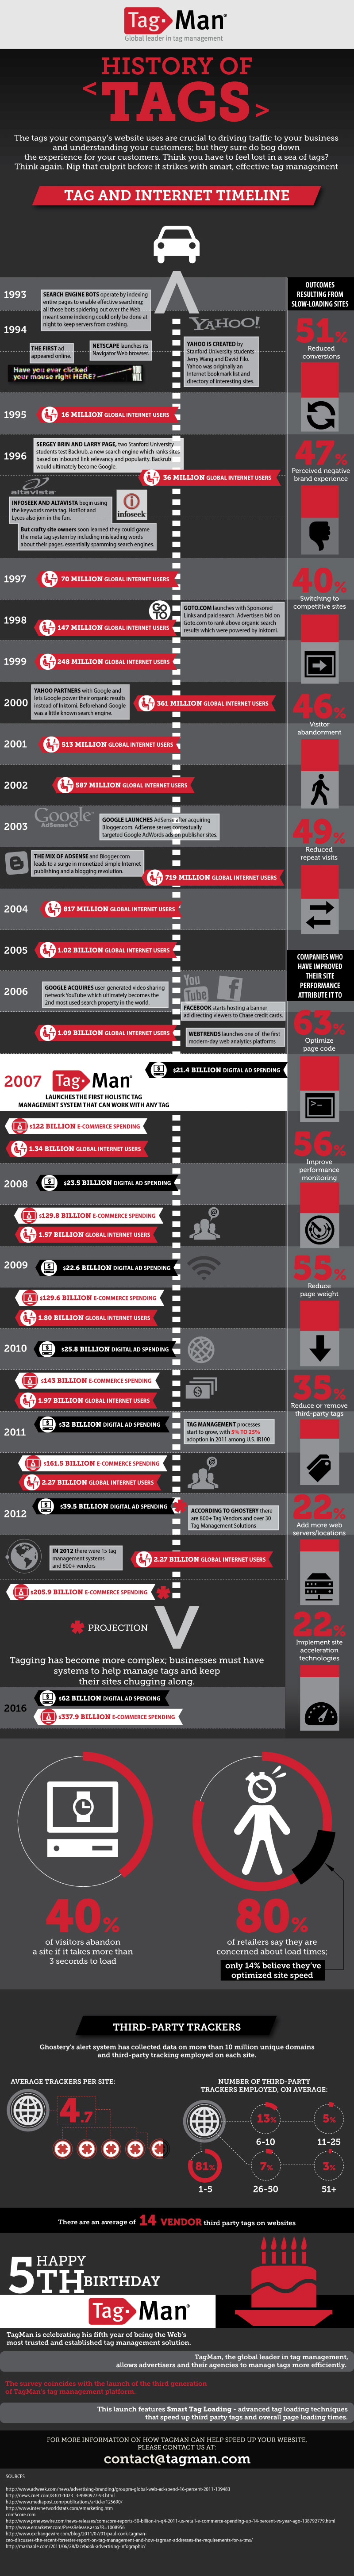 History-Of-Internet-Tags-infographic